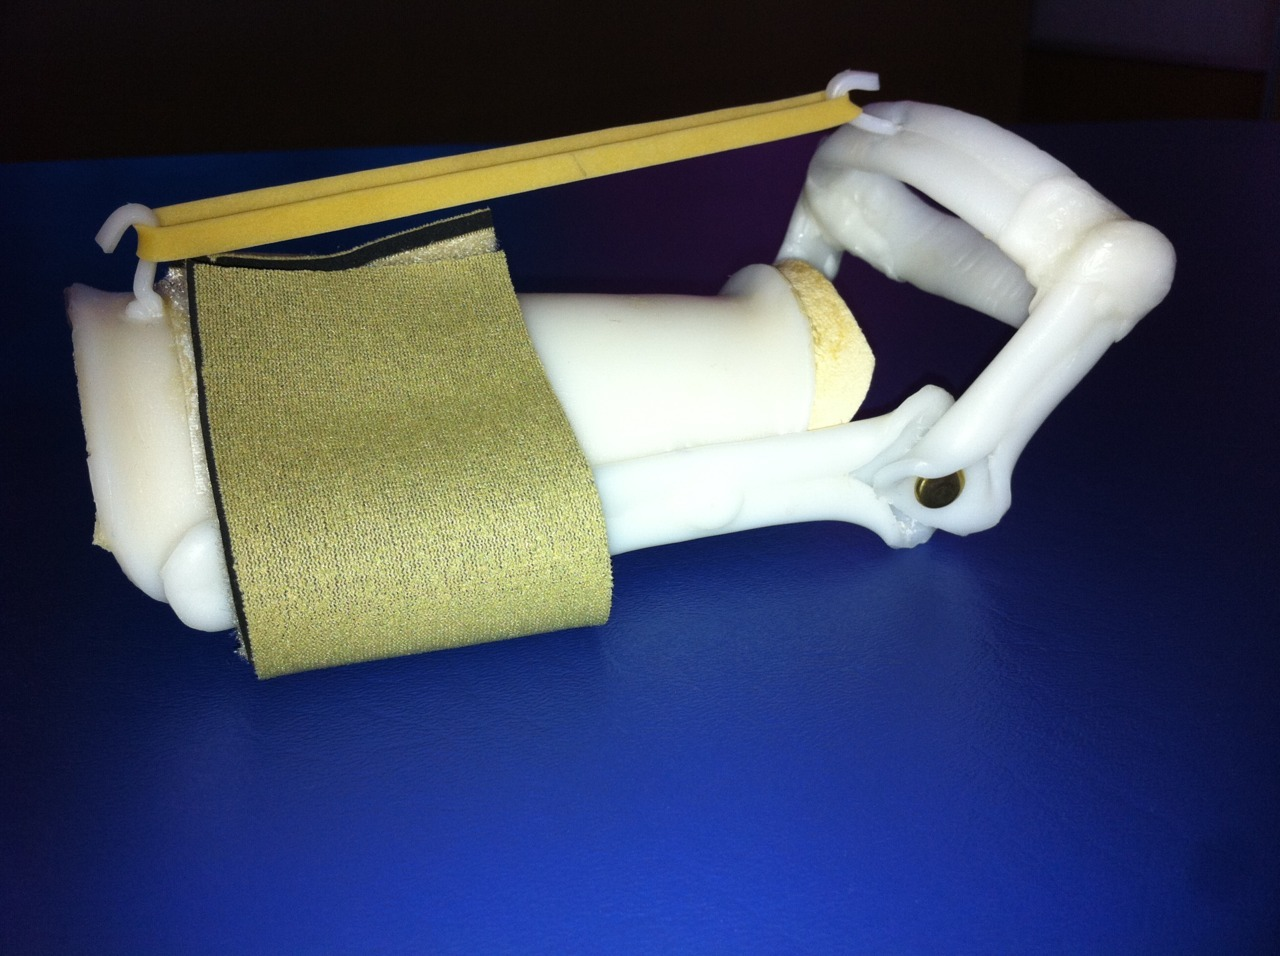 I had a client with juvenile rheumatoid arthritis who was limited in wrist extension. Her doctor had requested I make a splint to increase range of motion in wrist extension. I could have made a static splint and remolded it as she progressed, but it didn't seem like the best option. I did a little research online, and found a dynamic design. I've never made a dynamic splint before, but I was willing to try it.   On this splint, there is a piece that fits on the dorsal side of the forearm and the fingers slide into the oval shape and rest at the MCP joints. There are two small hooks. One at the far side of the forearm and one at the fingers. A rubber band is secured around the hooks and provides a consistent stretch into wrist extension. The hinge at the wrist allows her to flex her wrist and use her hand functionally. As she progressed, I used tighter rubber bands and eventually twisted them around several times to provide a greater stretch. She went from neutral wrist extension to 70 degrees.